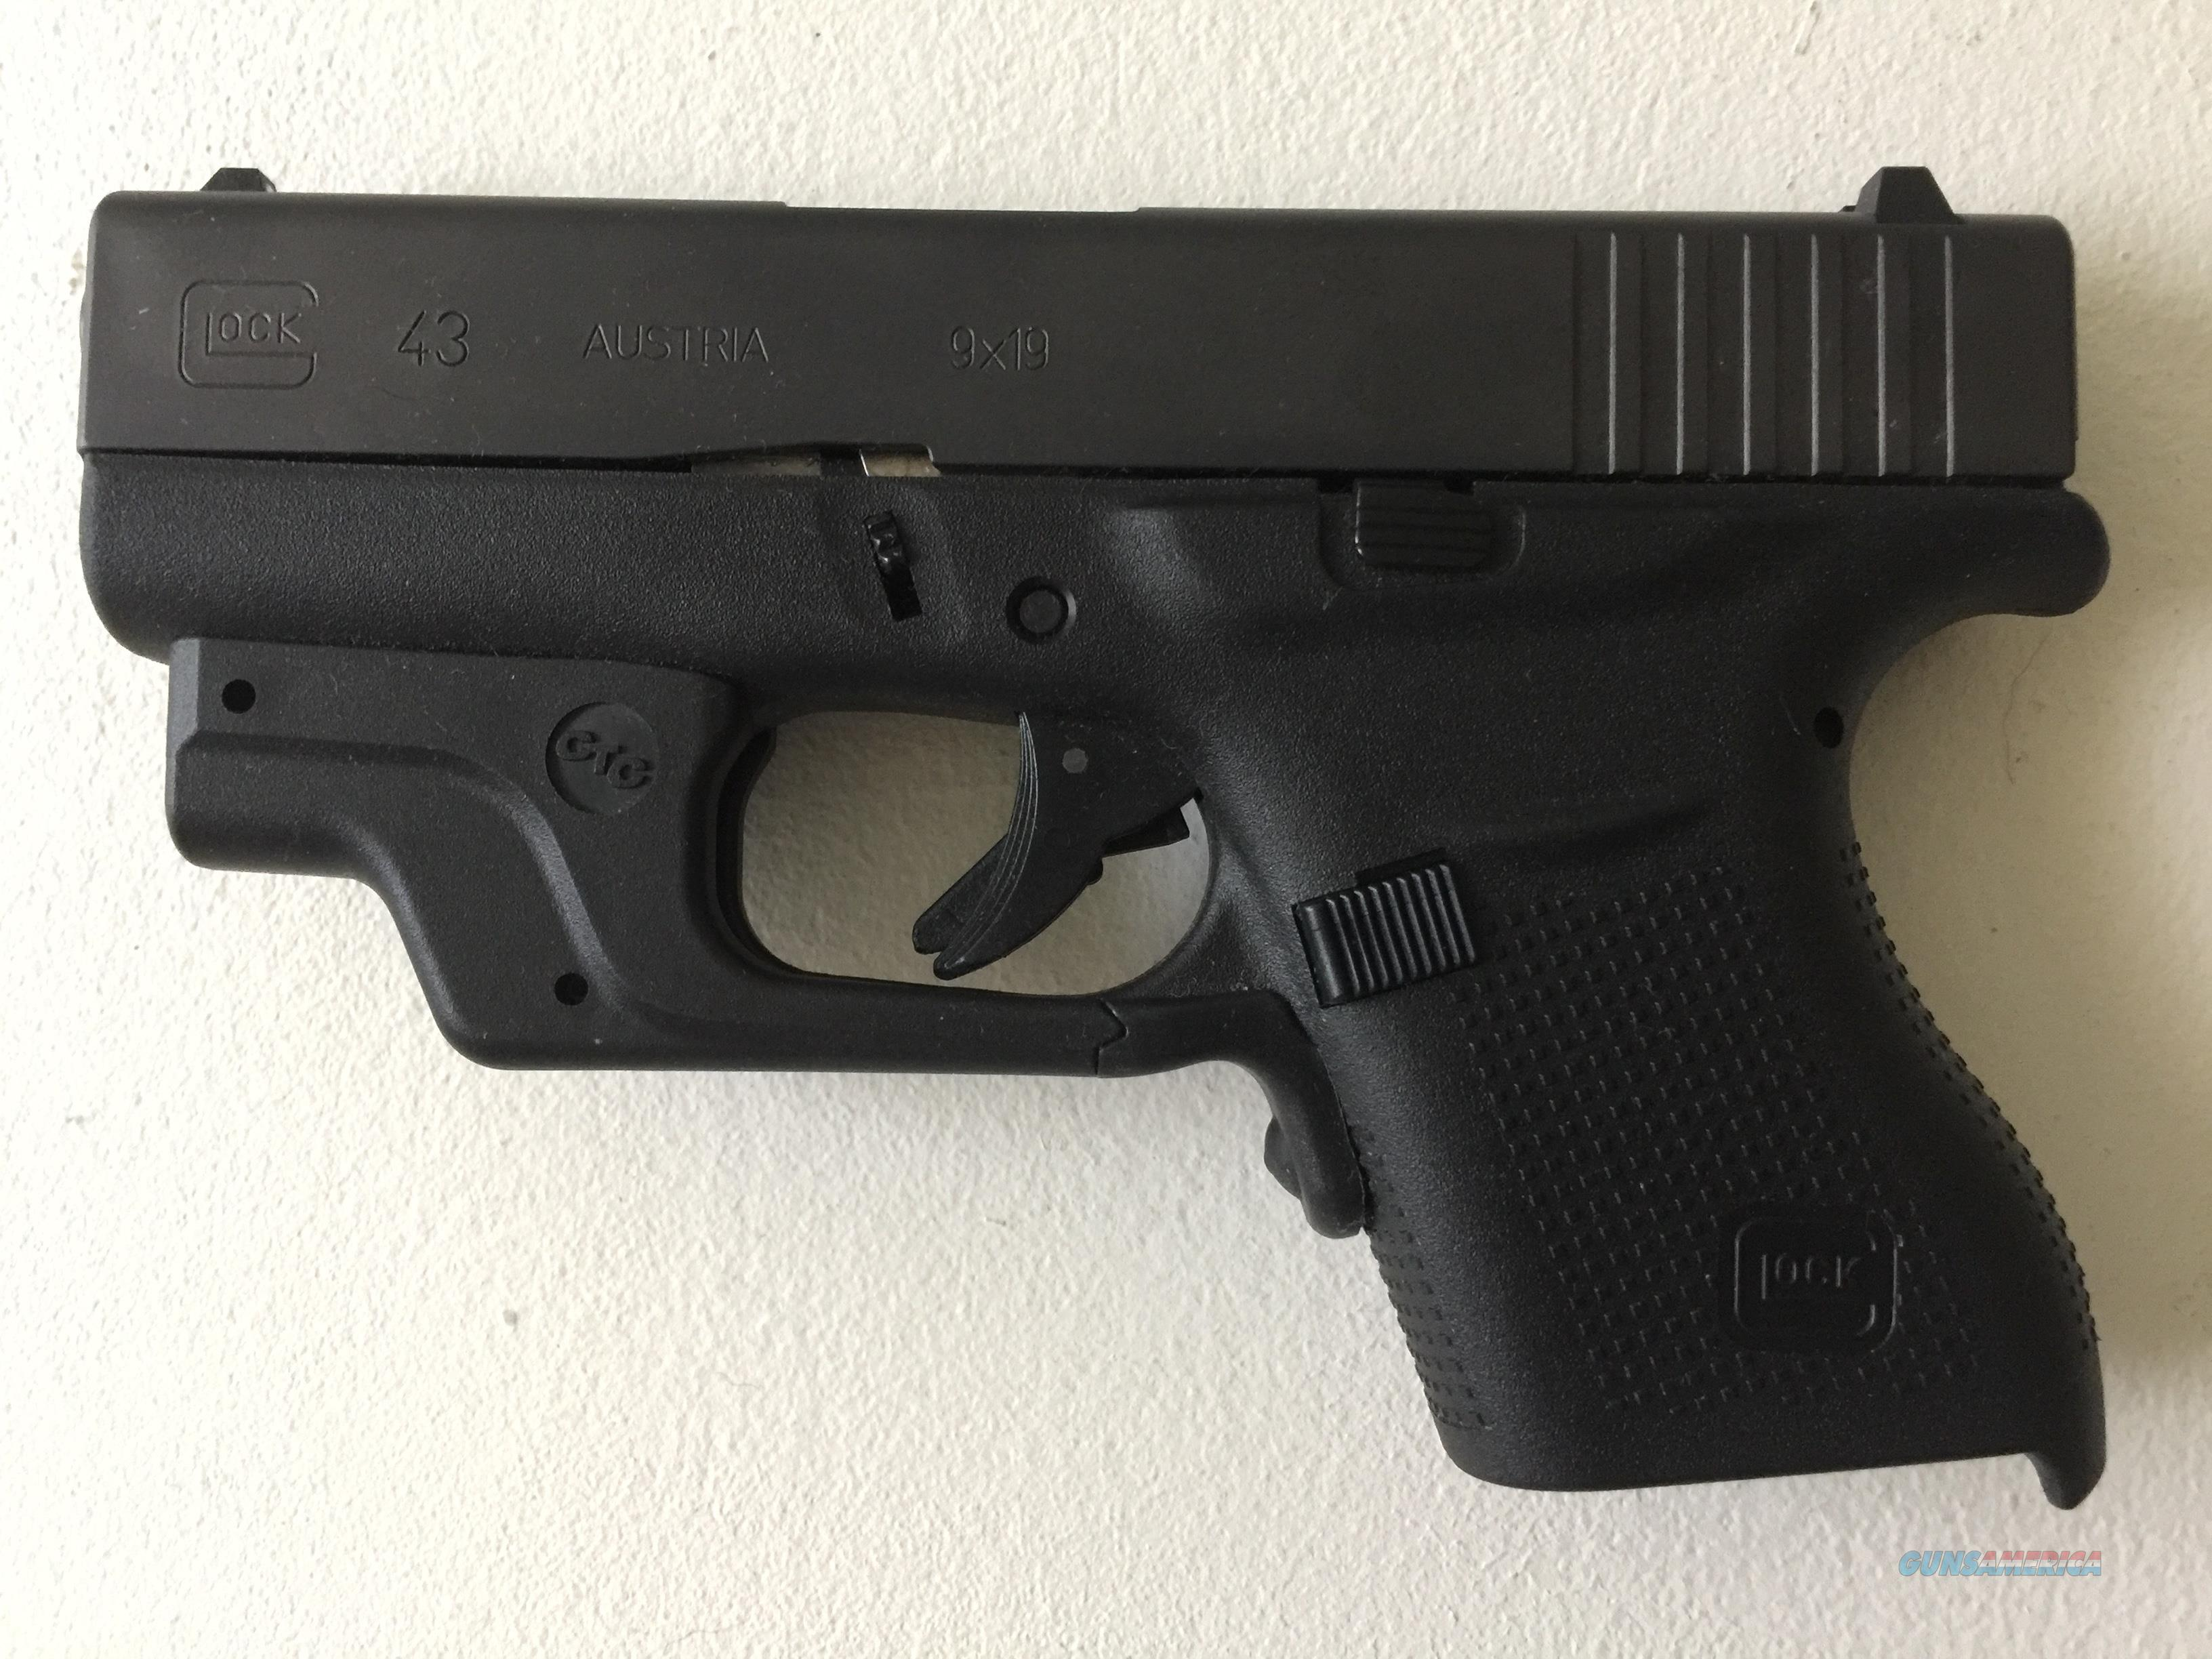 NEW Glock 43 9mm Includes NEW LG-443G GREEN LASERGUARD®  Guns > Pistols > A Misc Pistols